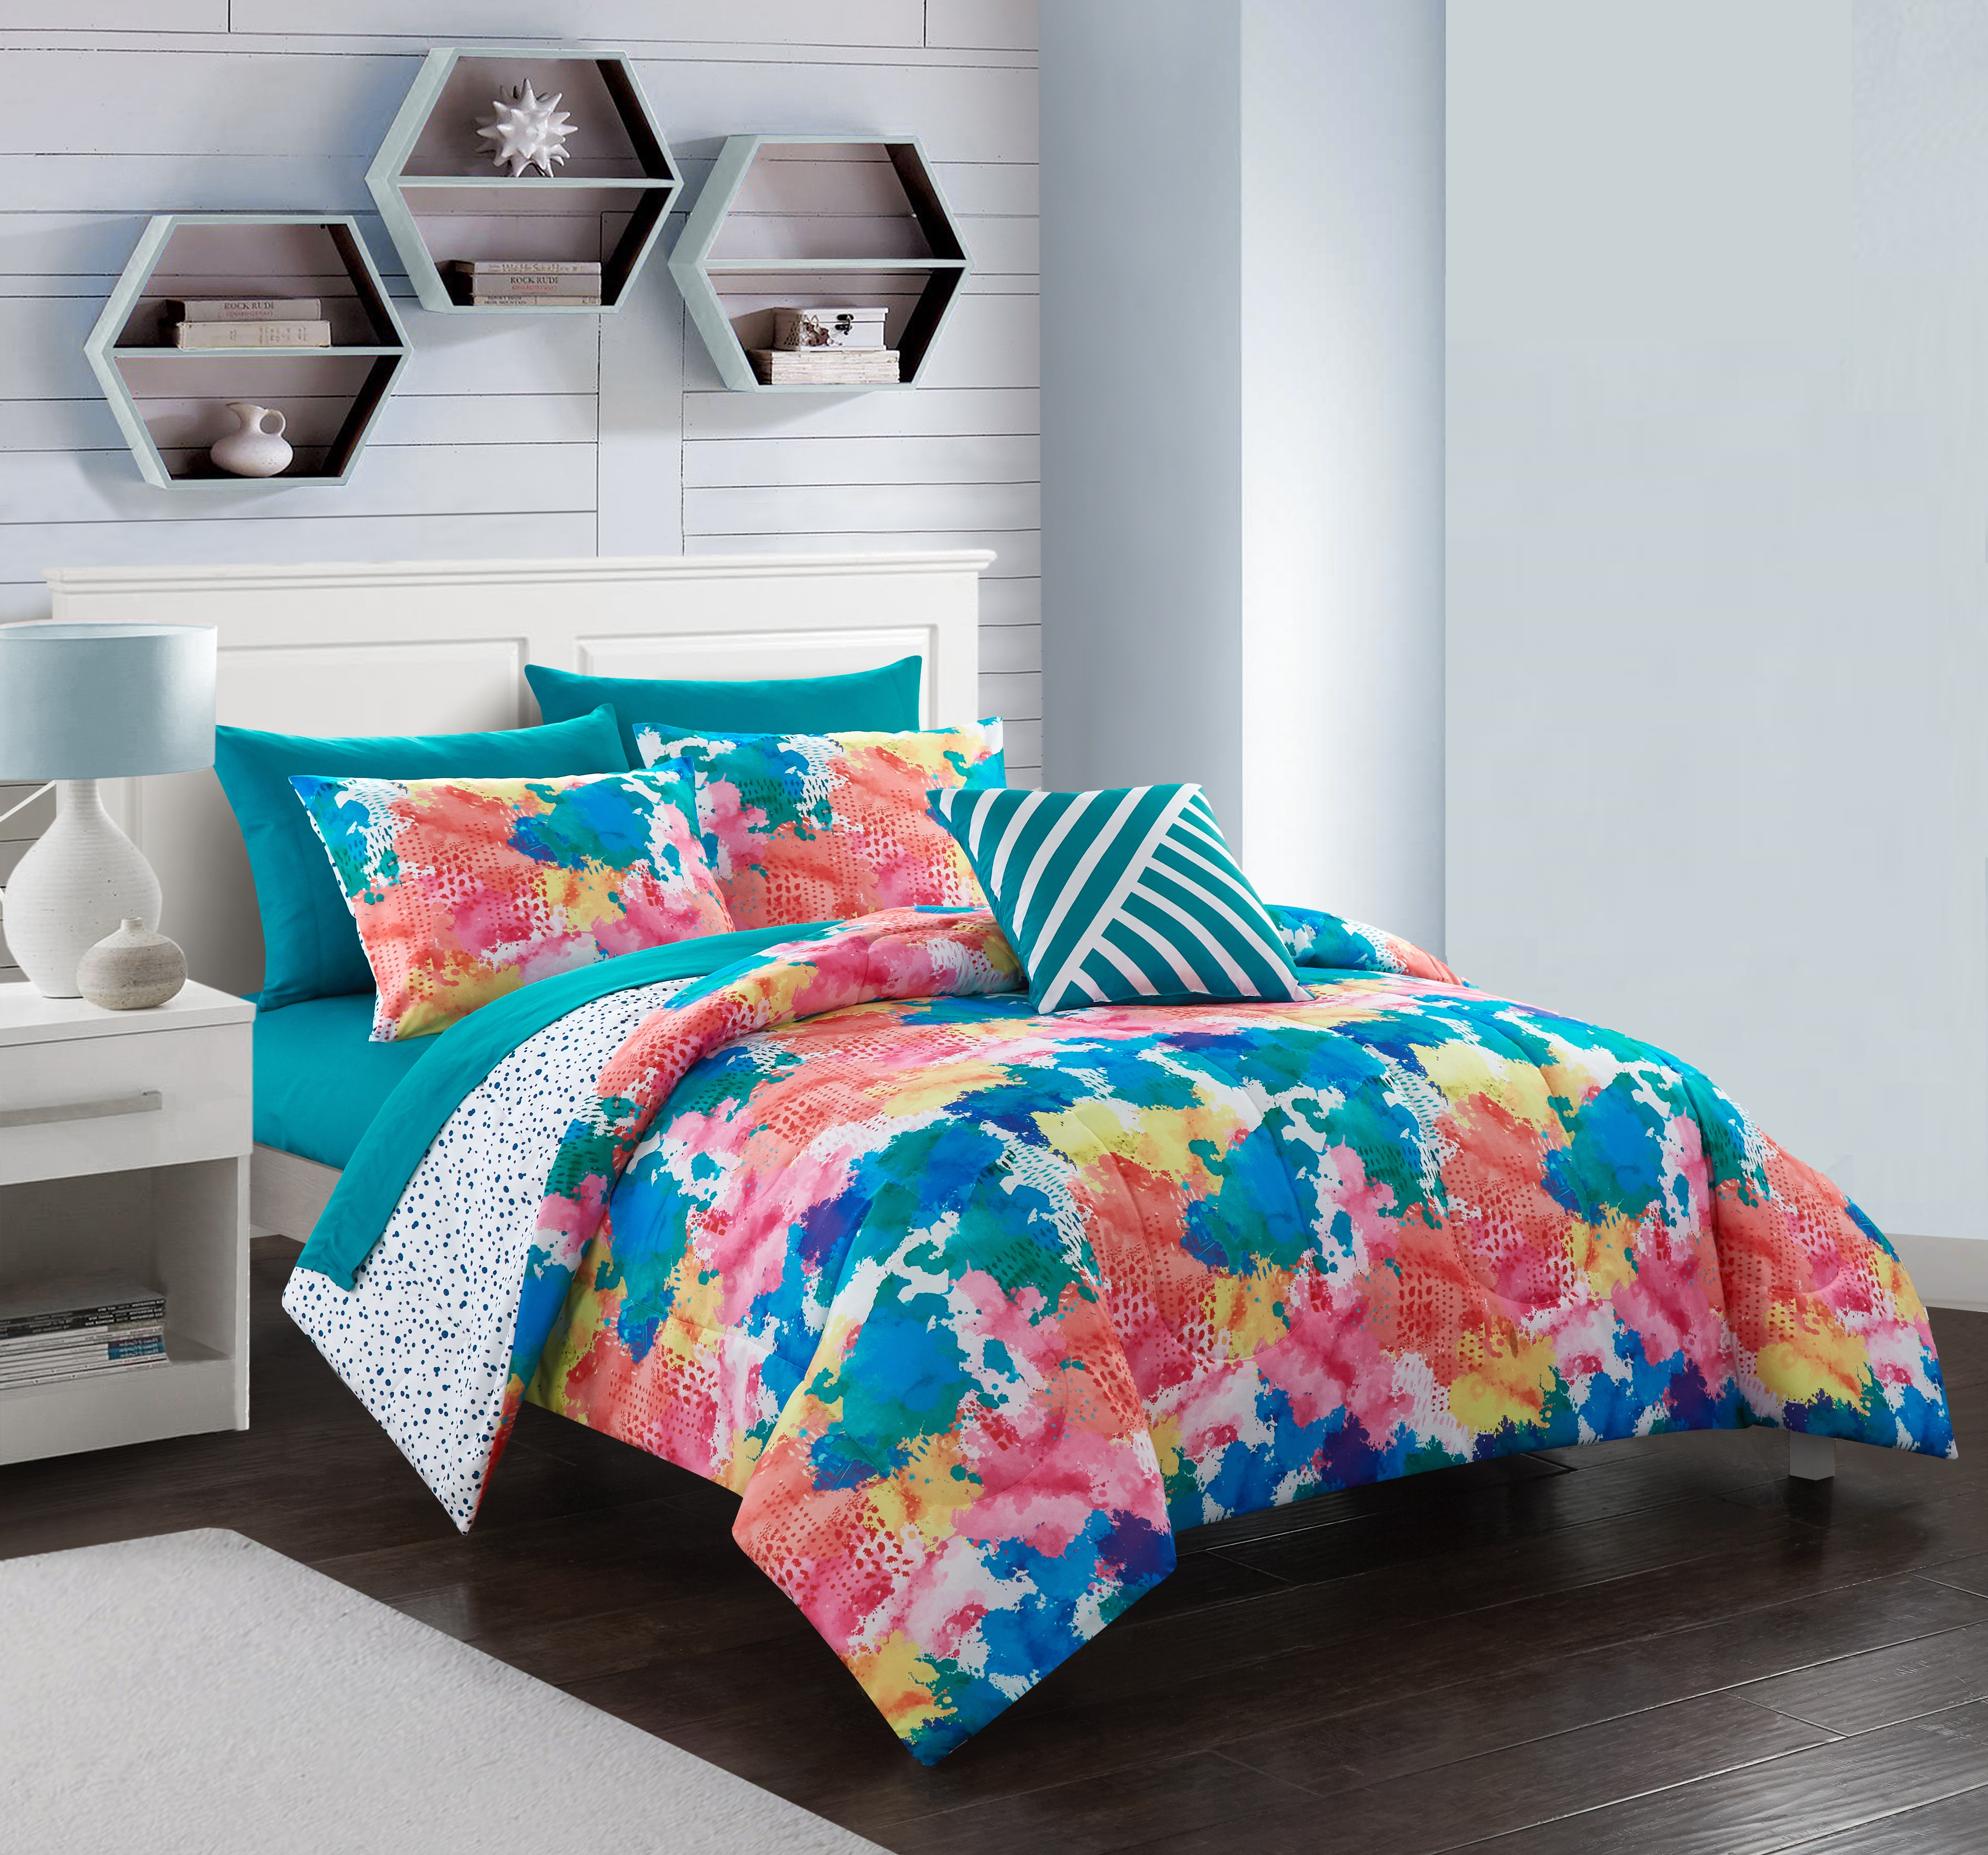 Your Zone Color Splash Bed in a Bag